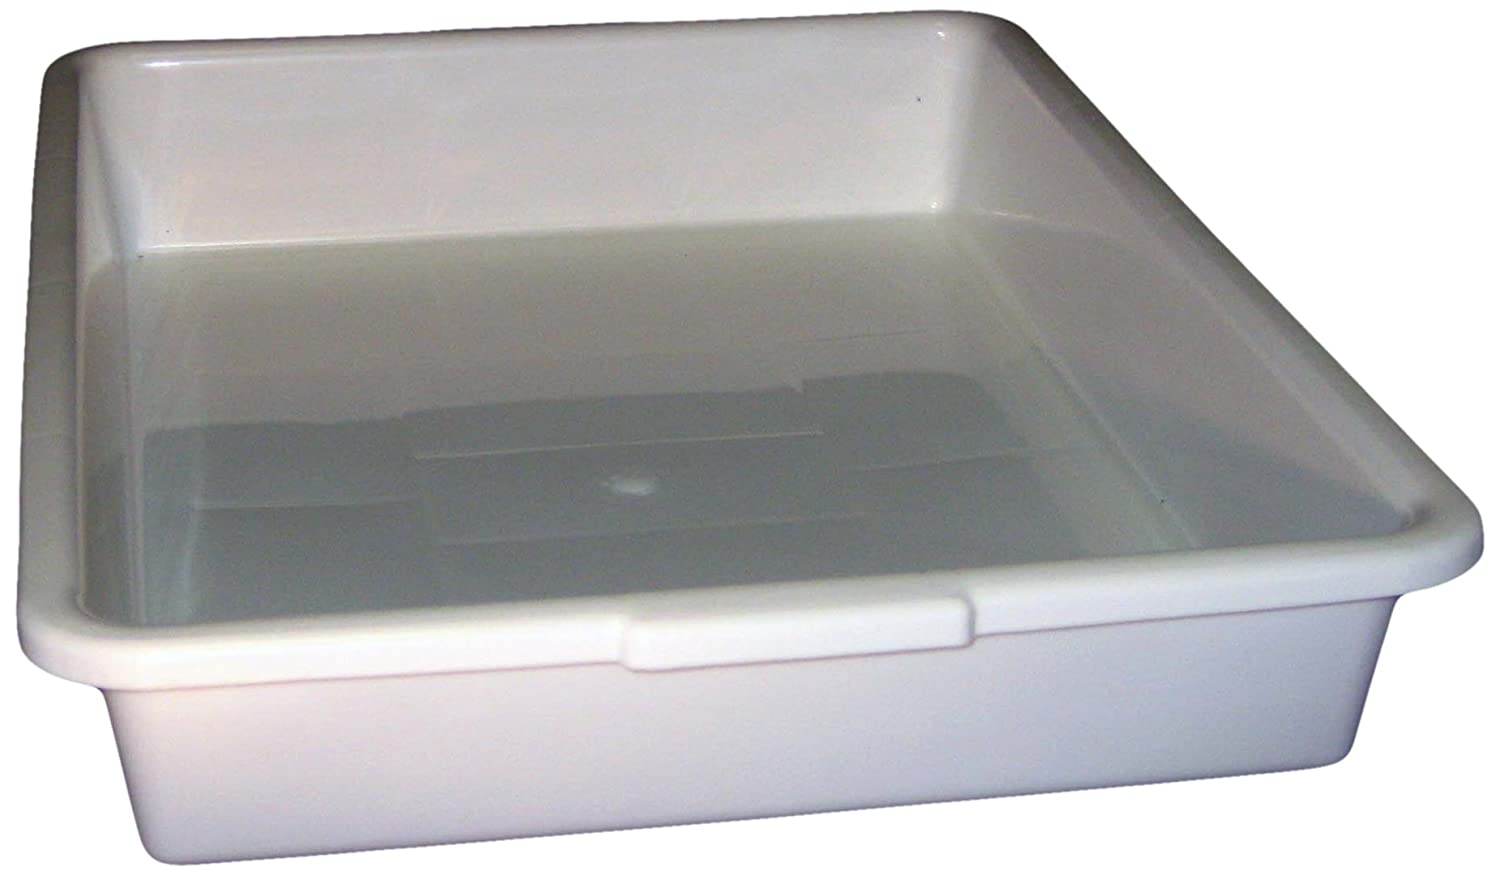 "PSC 1007176 General Purpose Tray, Autoclavable, Polypropylene, 18"" x 14"" x 3"", White"